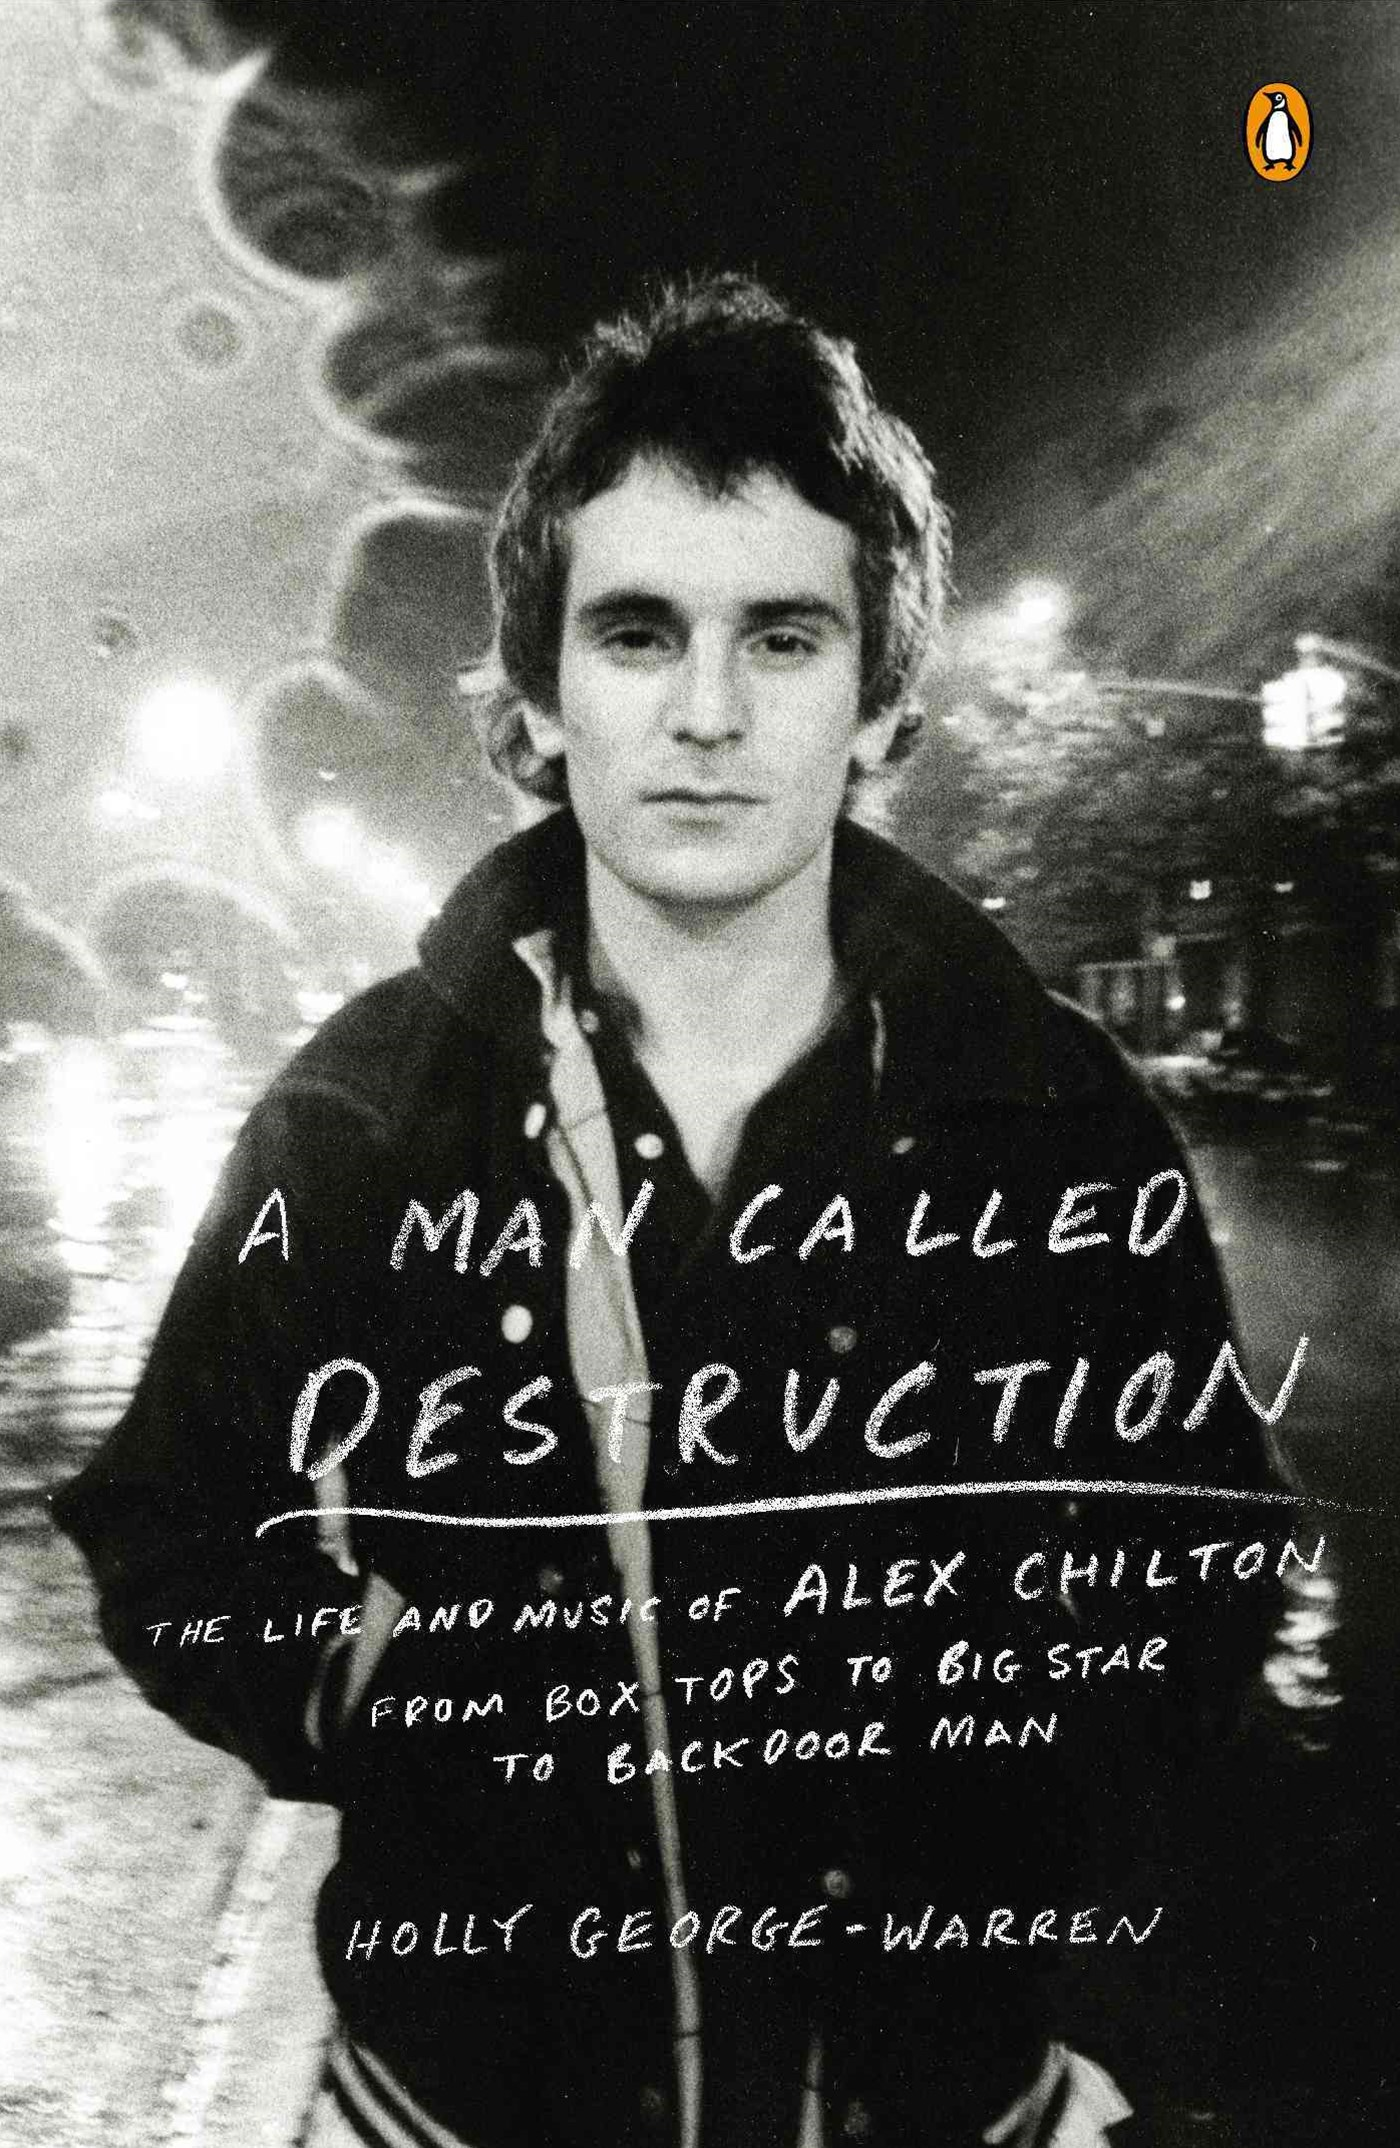 A Man Called Destruction: The Life And Music Of Alex Chilton,From Box Tops To Big Star To Backdoor Man